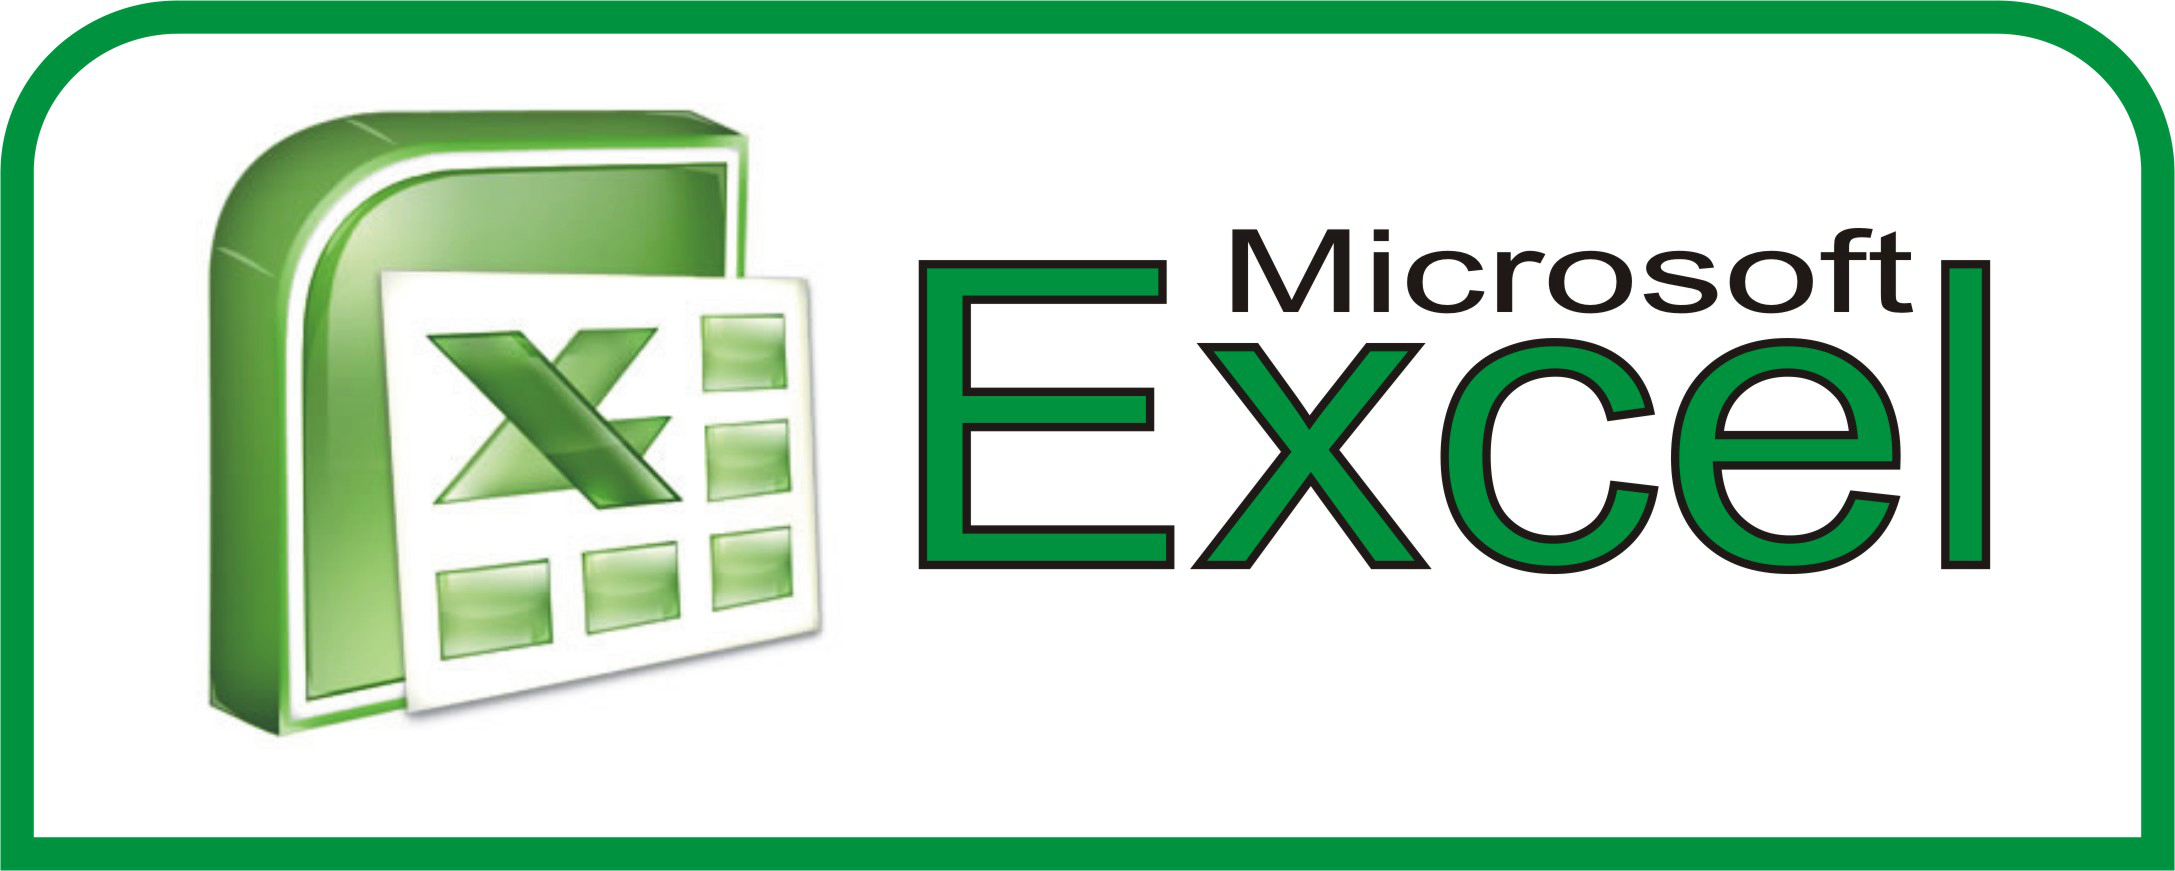 Ediblewildsus  Unusual  Excel Shortcuts You Probably Didnt Know About  Techdissected With Inspiring Excel Remove Duplicate Rows Besides Excel Lock Row Furthermore Excel Exponential With Lovely Calculating Confidence Interval In Excel Also How To Create A Formula In Excel In Addition How To Merge Columns In Excel And Separate First And Last Name In Excel As Well As Excel Isblank Additionally Error Bars In Excel  From Techdissectedcom With Ediblewildsus  Inspiring  Excel Shortcuts You Probably Didnt Know About  Techdissected With Lovely Excel Remove Duplicate Rows Besides Excel Lock Row Furthermore Excel Exponential And Unusual Calculating Confidence Interval In Excel Also How To Create A Formula In Excel In Addition How To Merge Columns In Excel From Techdissectedcom